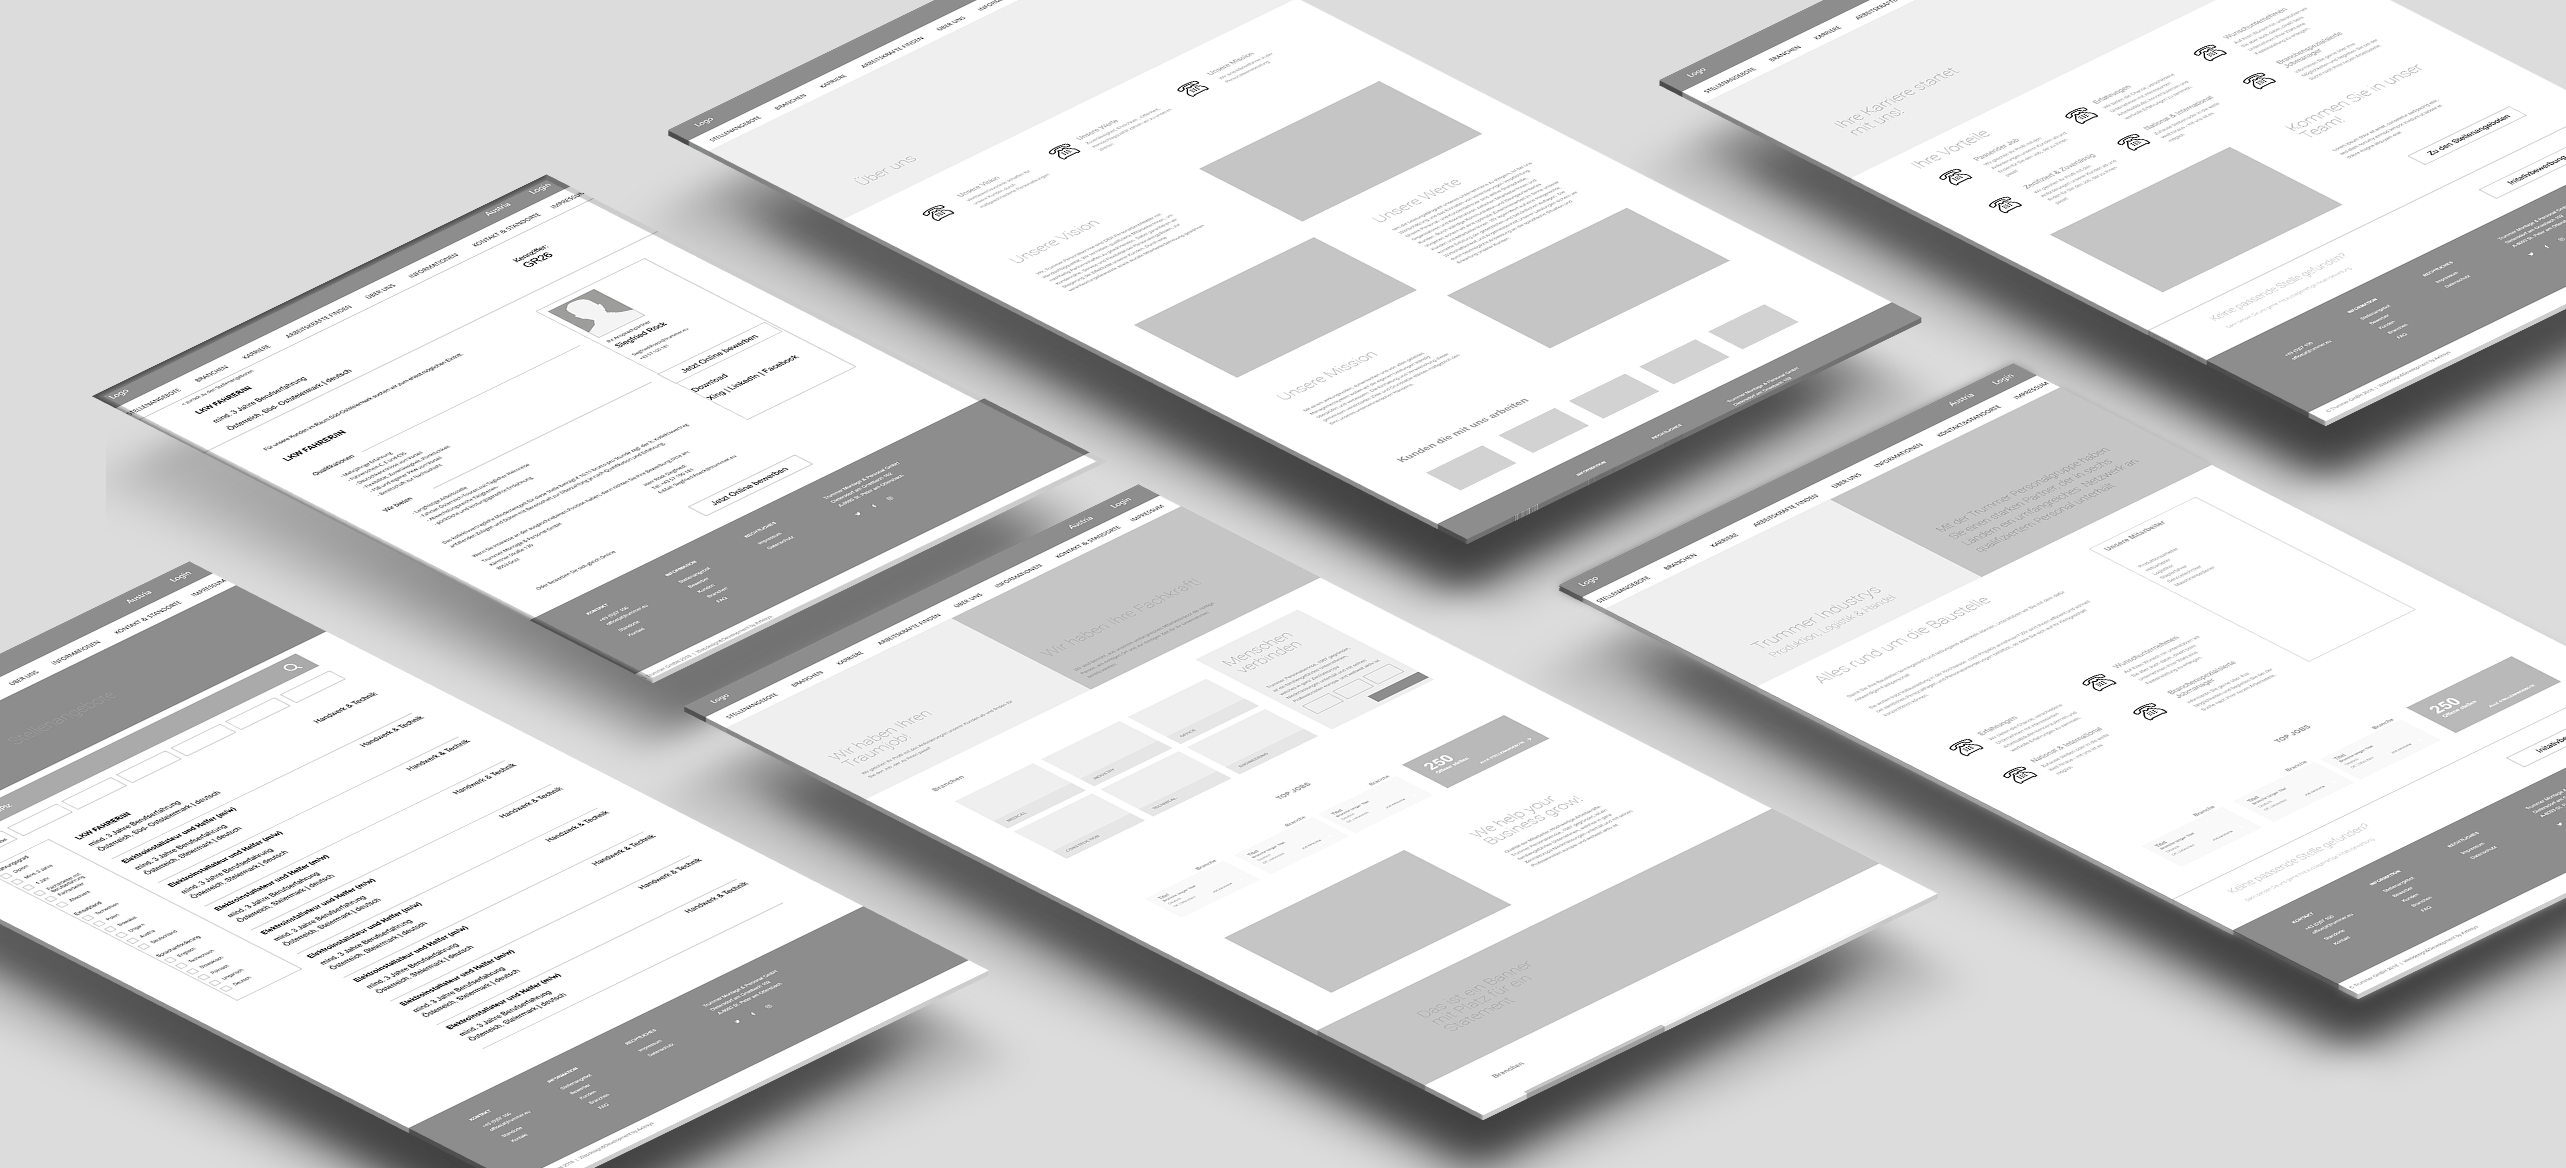 Trummer Website Wireframes